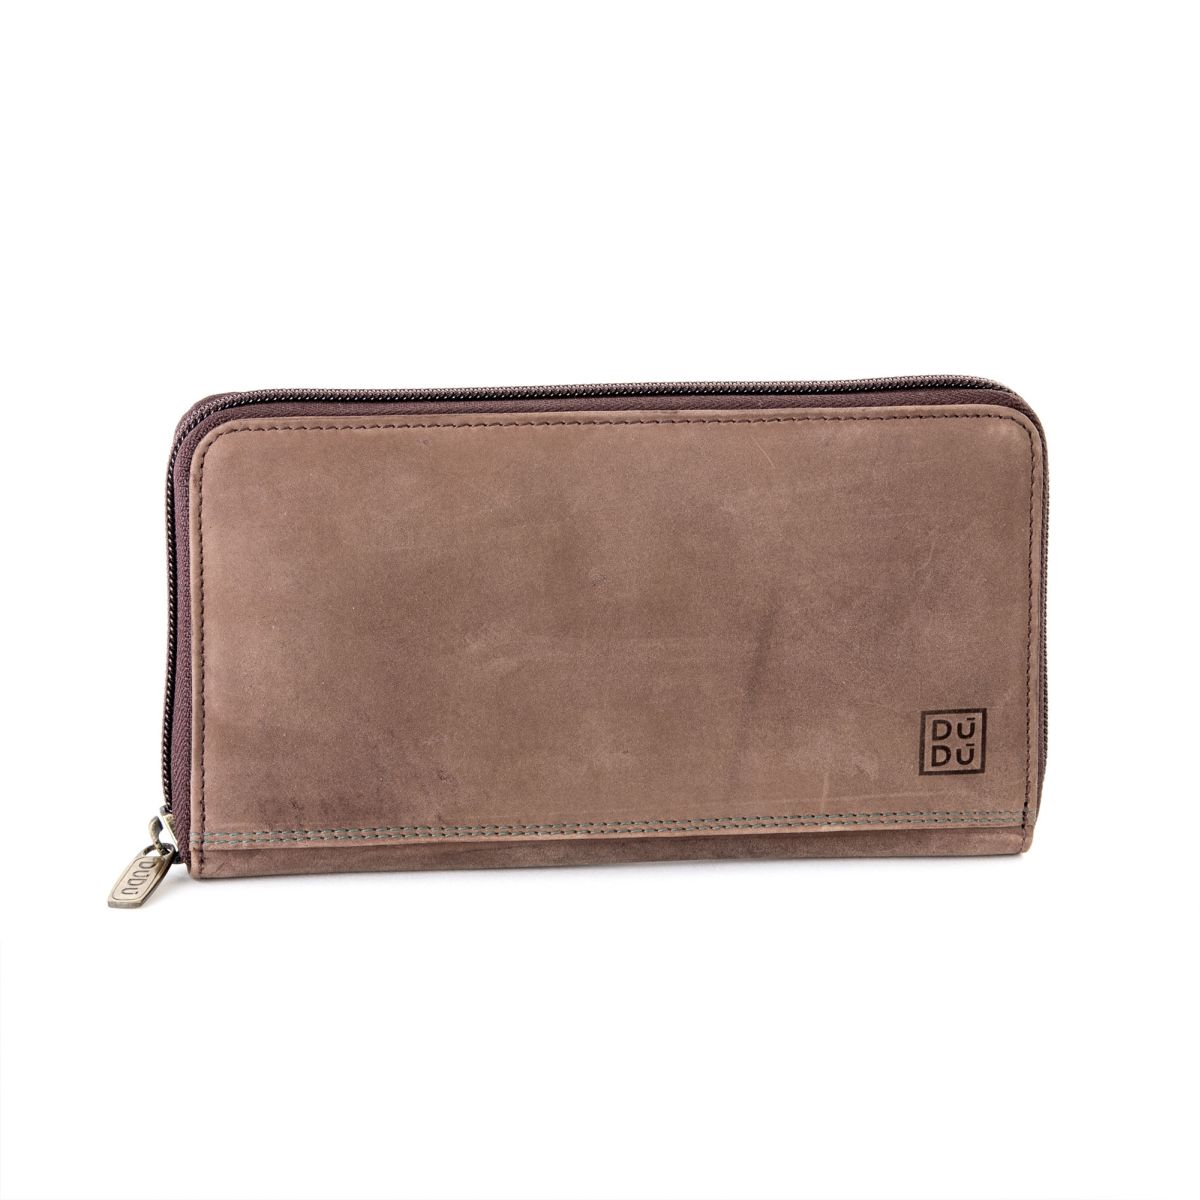 DuDu Ladies Leather Zip Vintage Wallet - Dark Brown